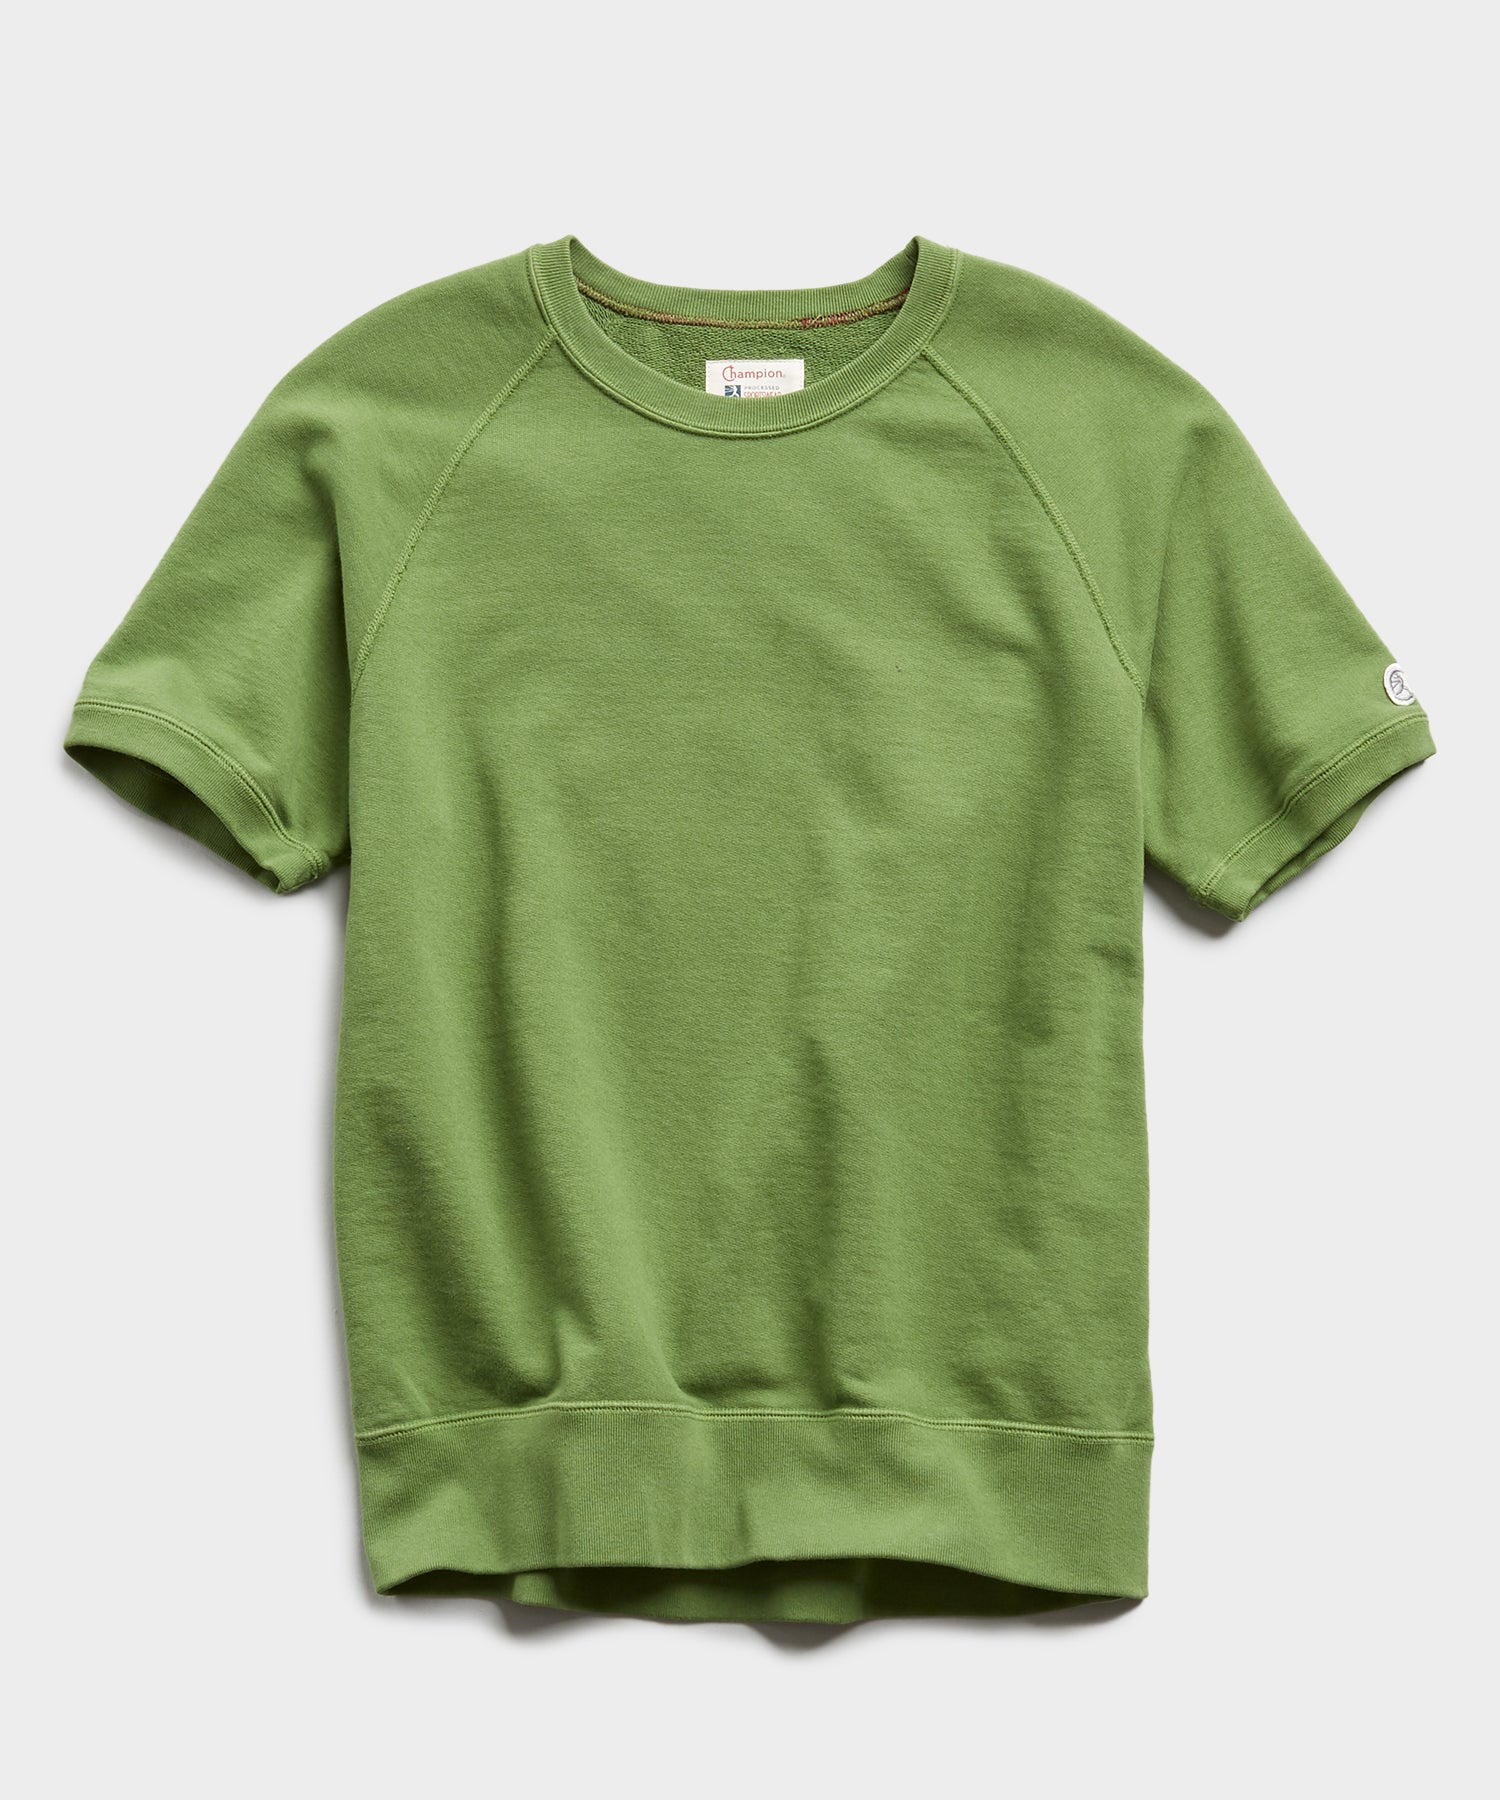 Lightweight Short Sleeve Sweatshirt in Guacamole